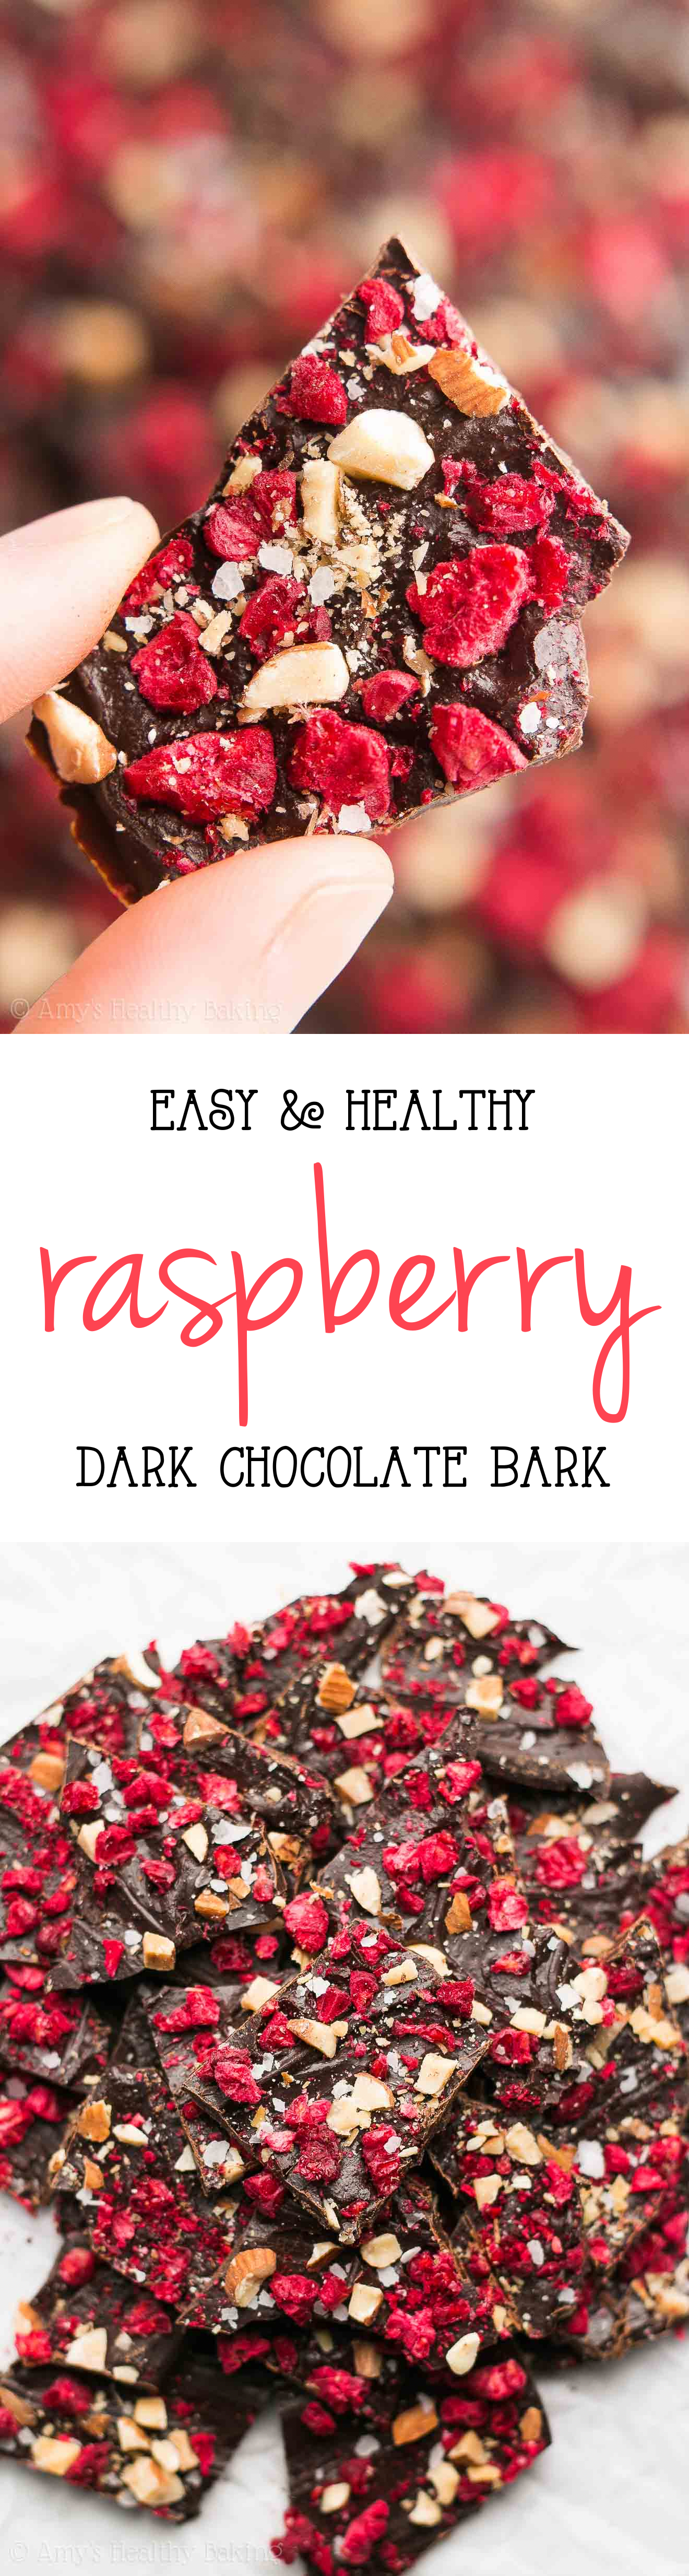 Healthy Raspberry Dark Chocolate Bark -- just 6 ingredients & NO sugar! So easy & perfect for a guilt-free Valentine's Day treat!